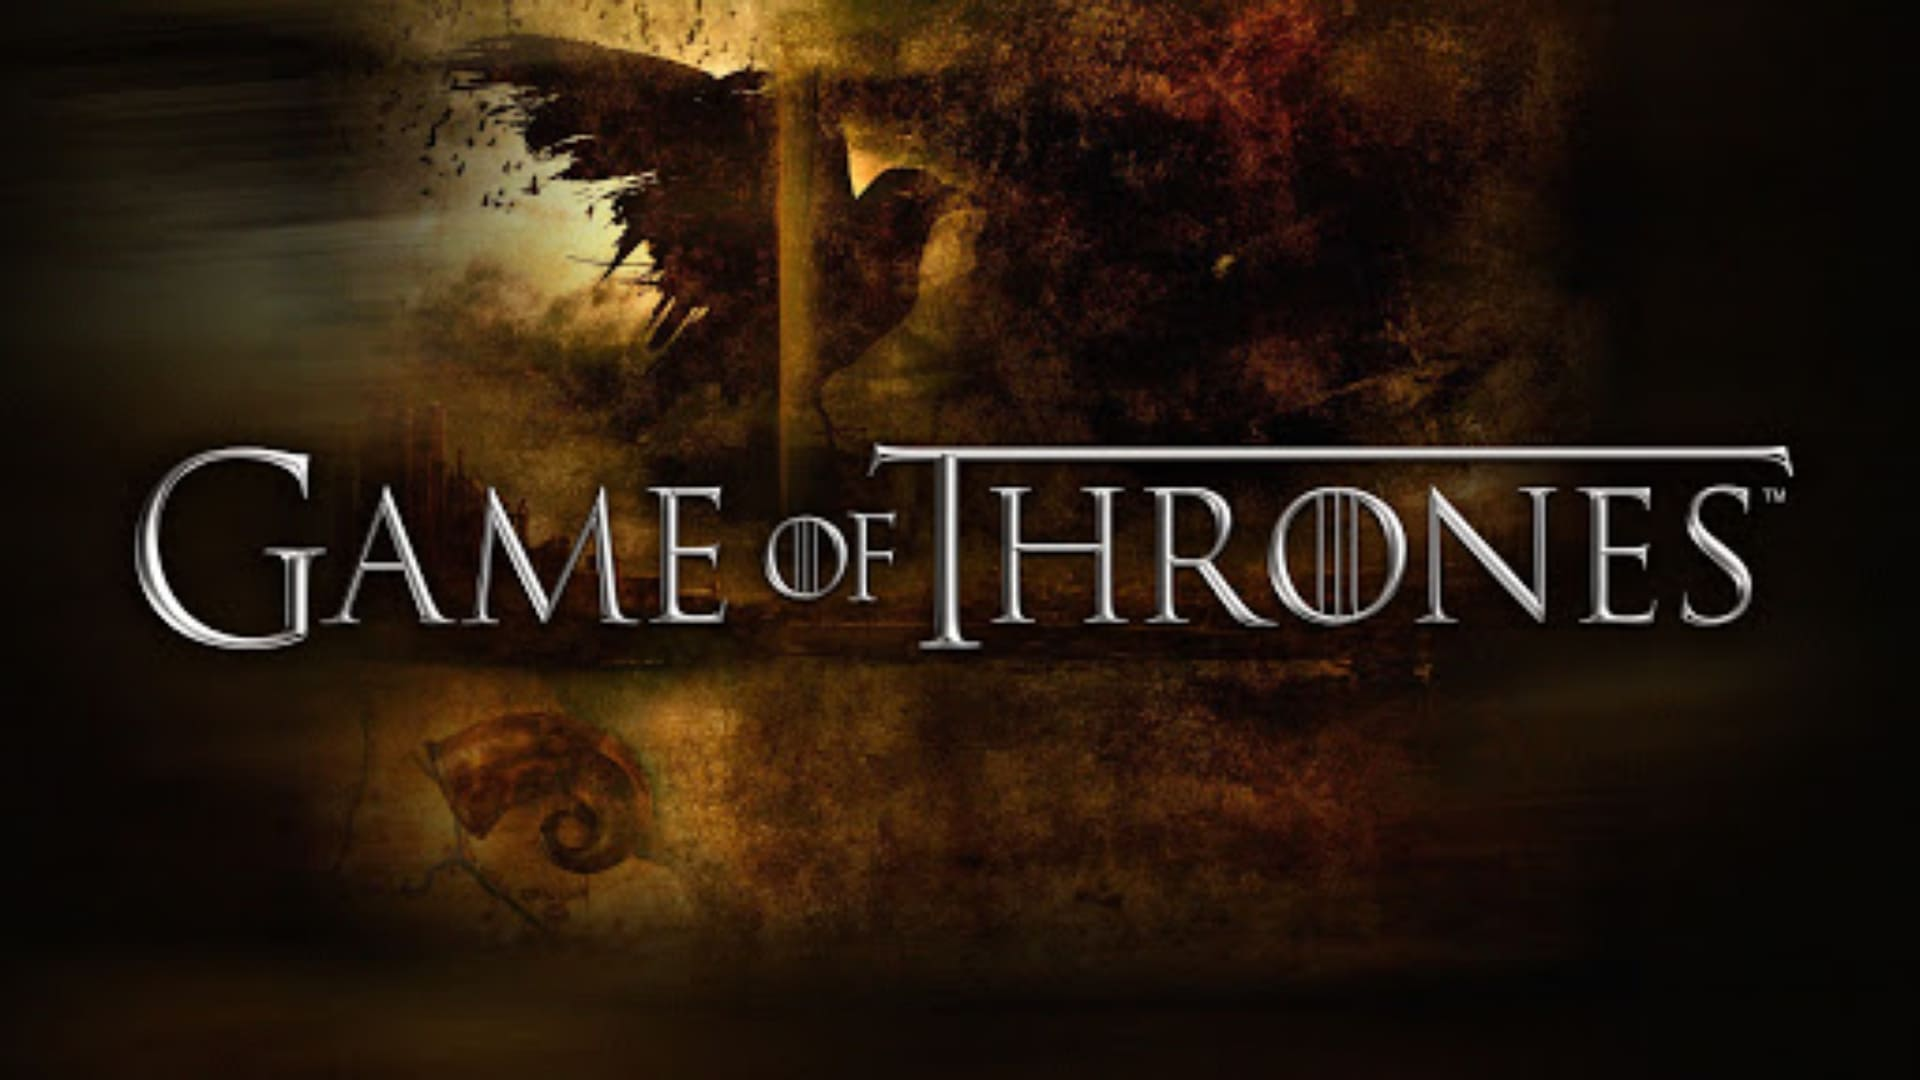 Game of thrones log